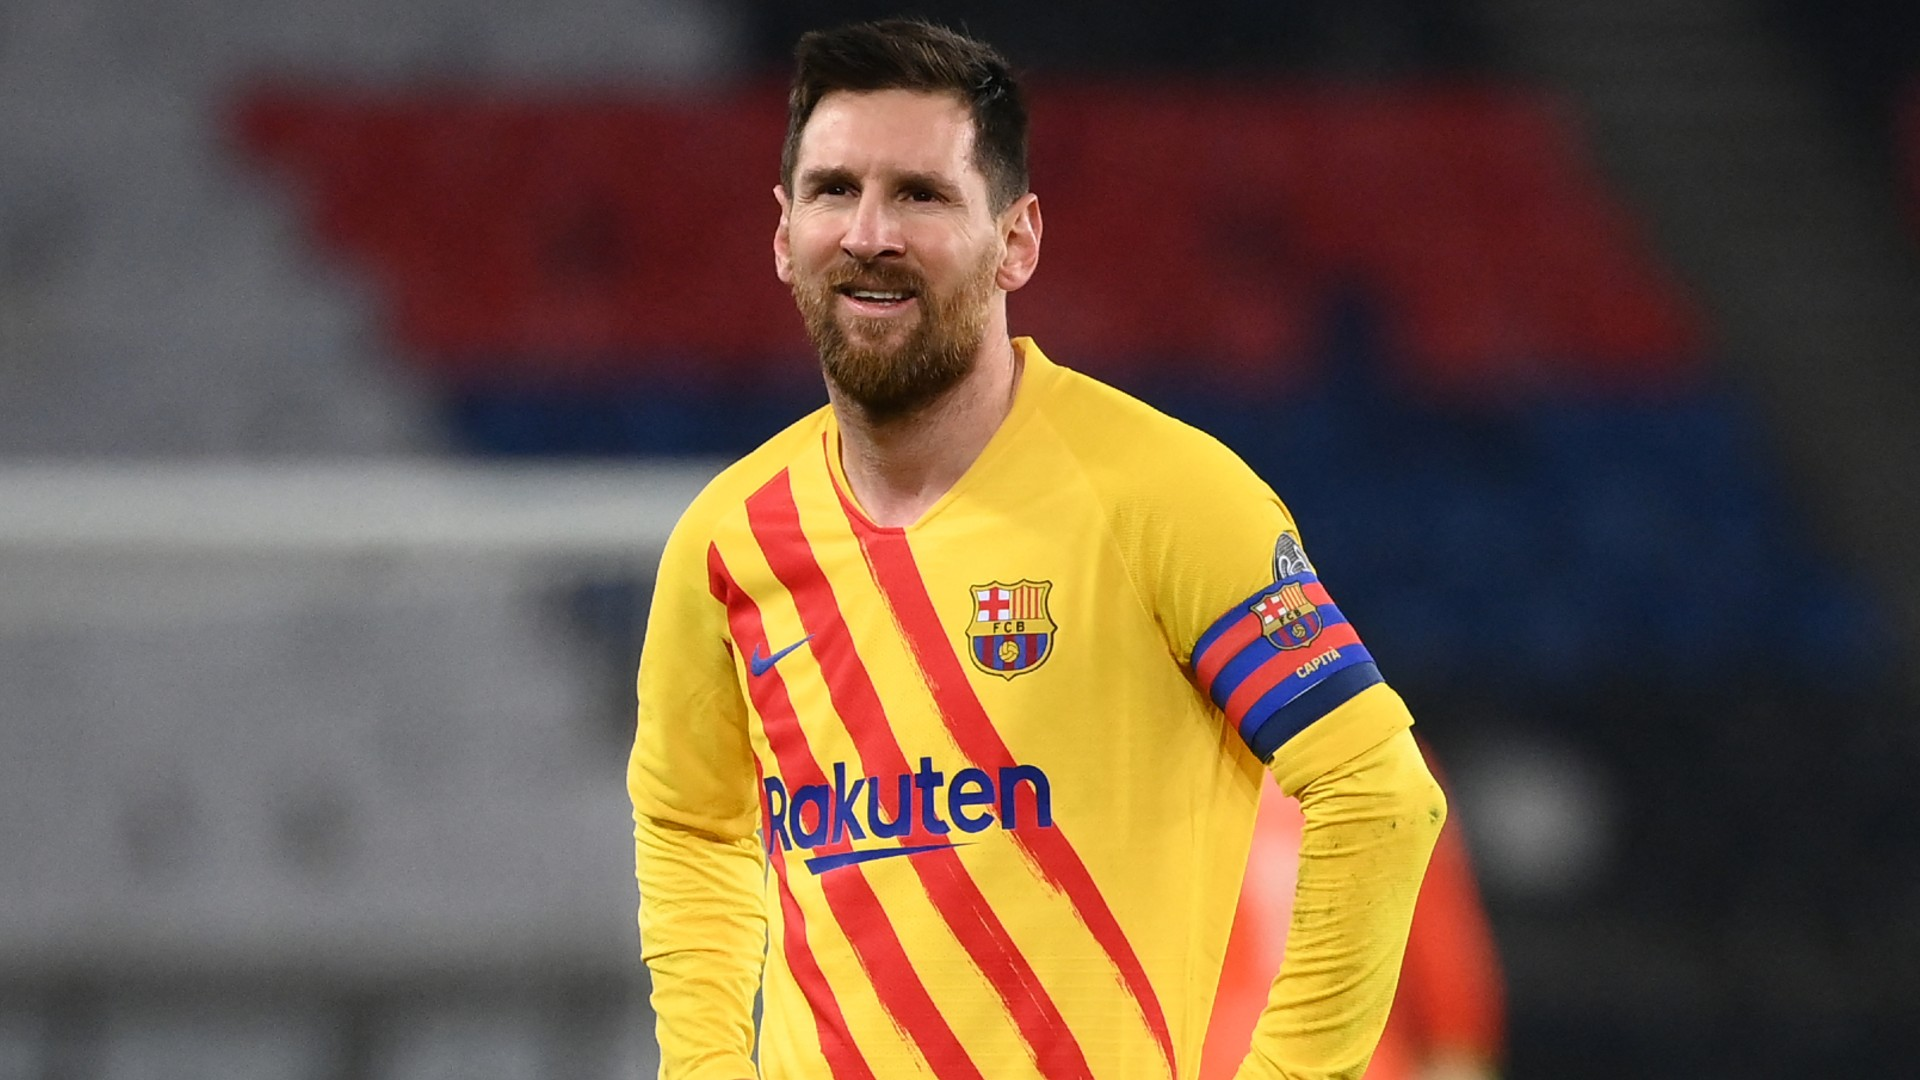 Lionel Messi bows out of Champions League with Barcelona; can improving club persuade him to stay?